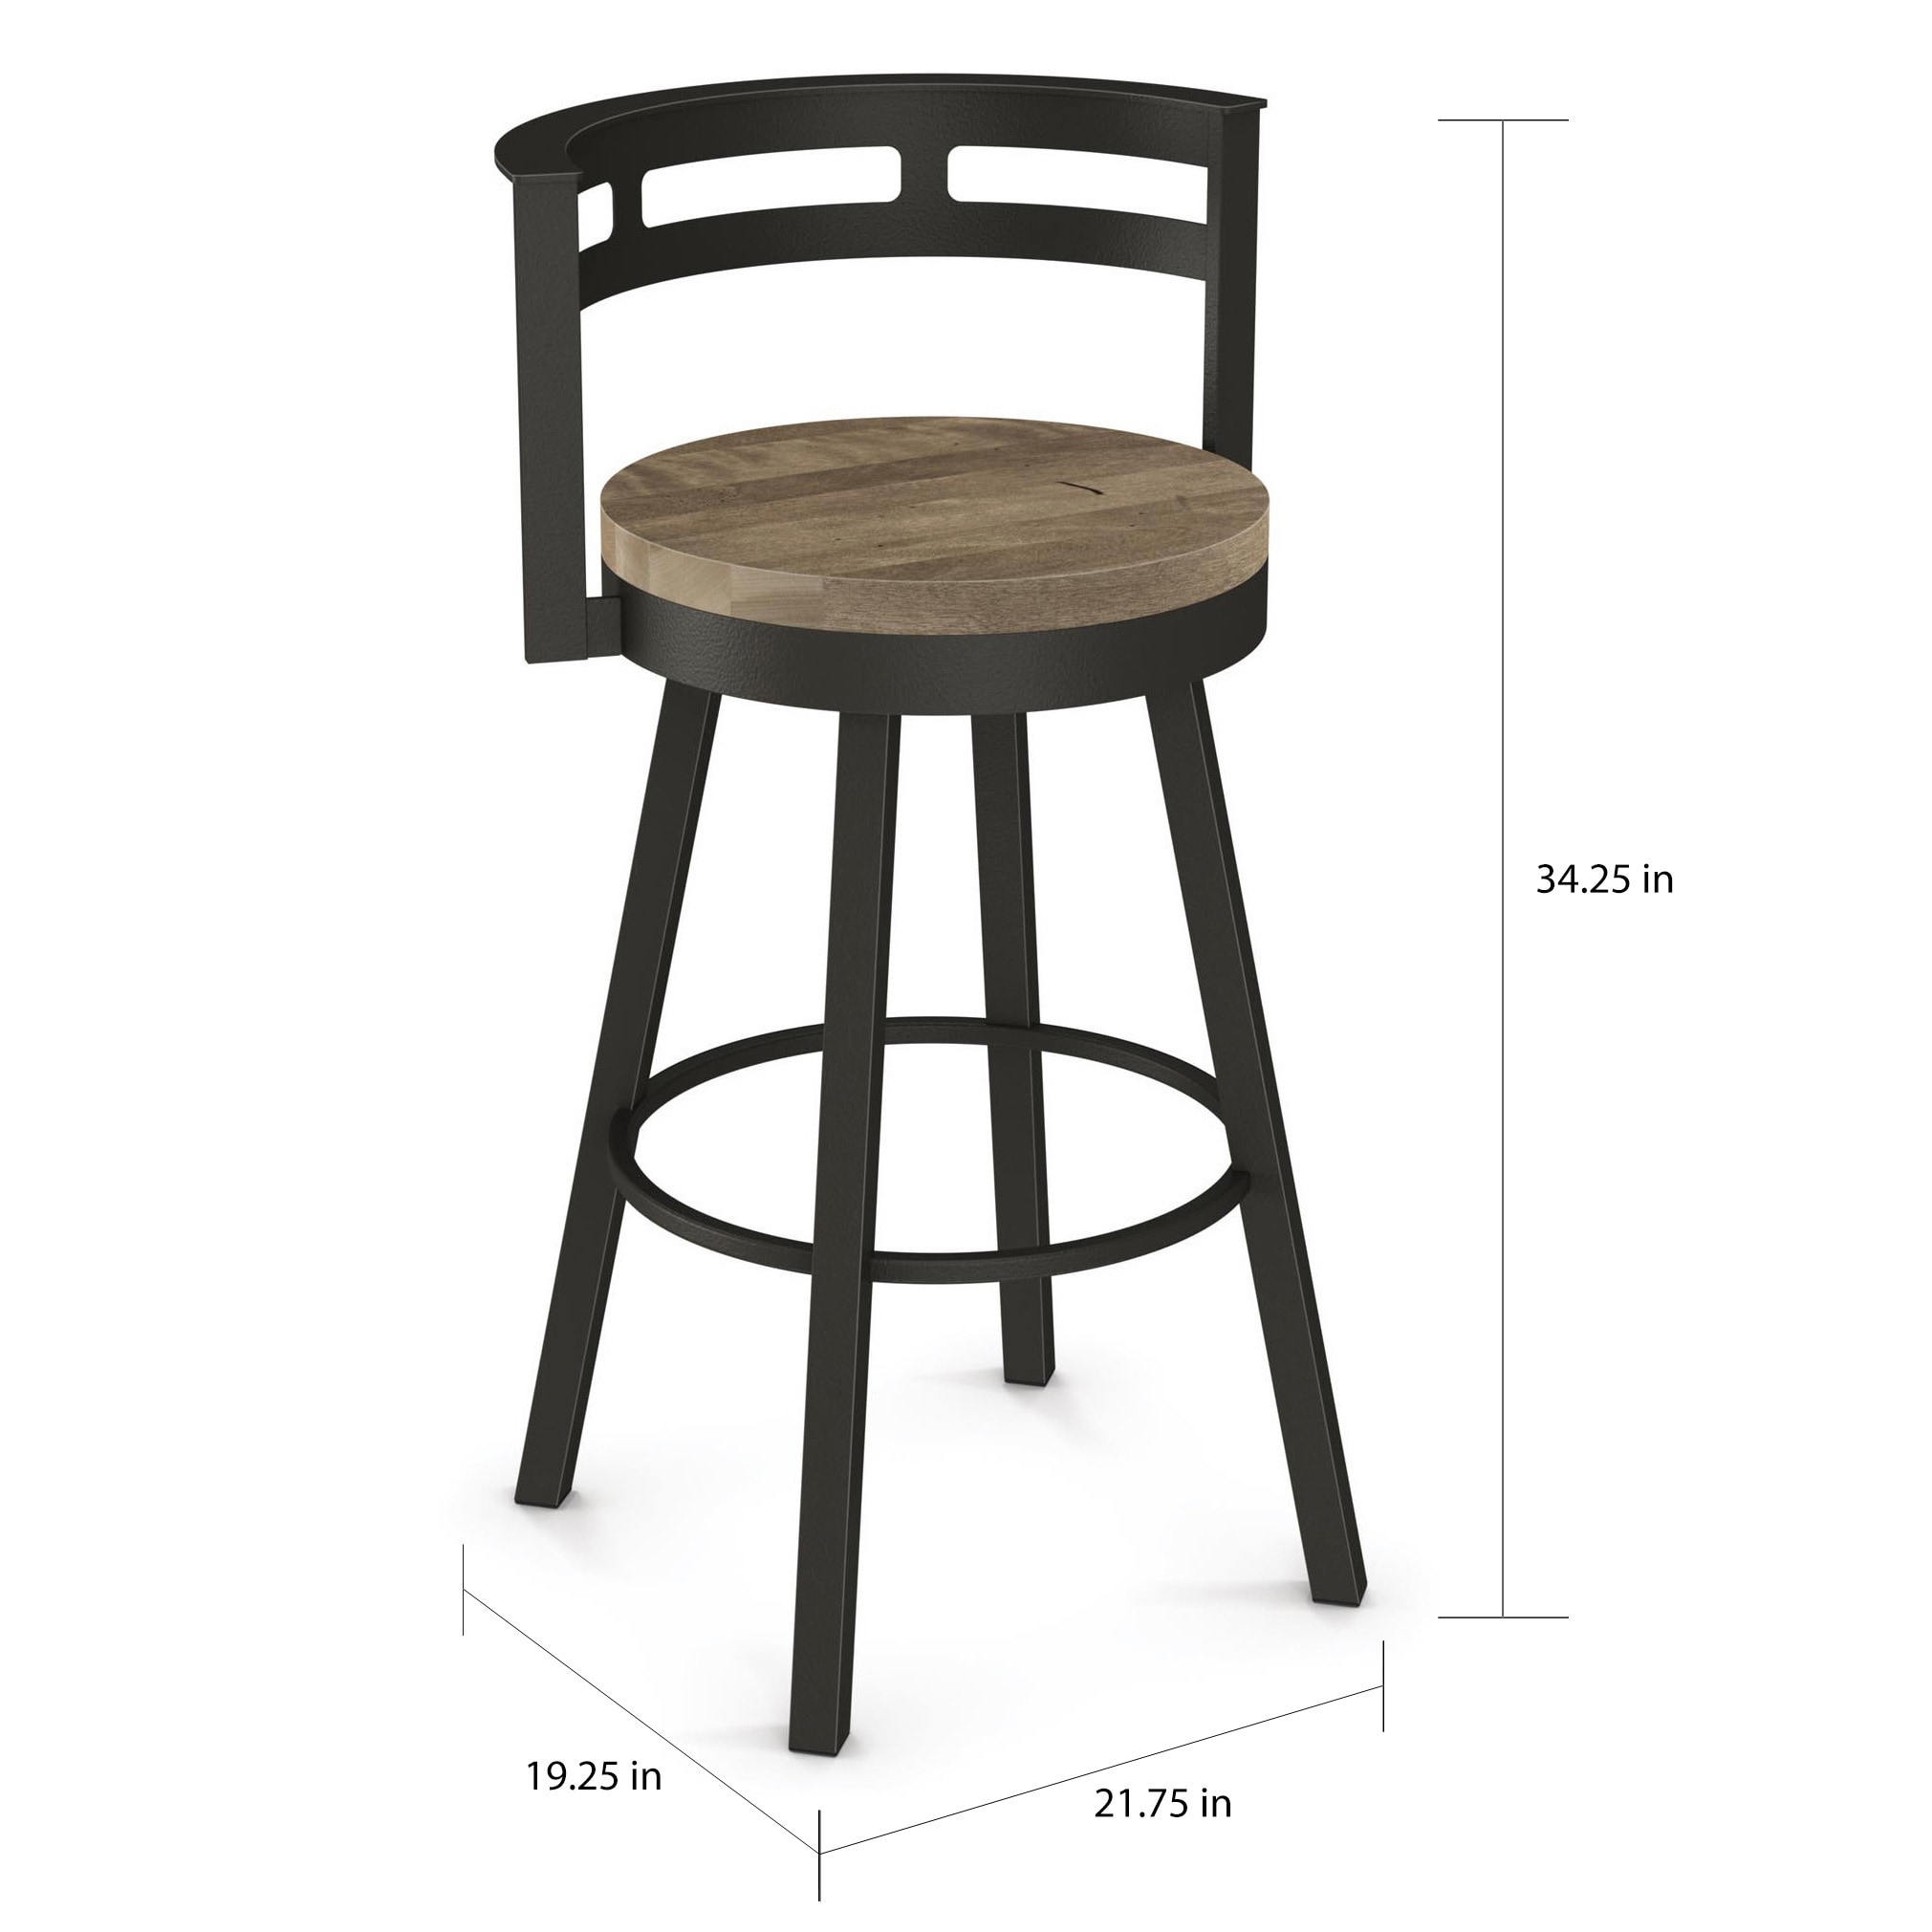 stool wood black awesome bar counter wooden tall industrial metal with cool bench amazing white back extra trendy stainless home arms kitchen design and modern backs stools persoperperso backless steel